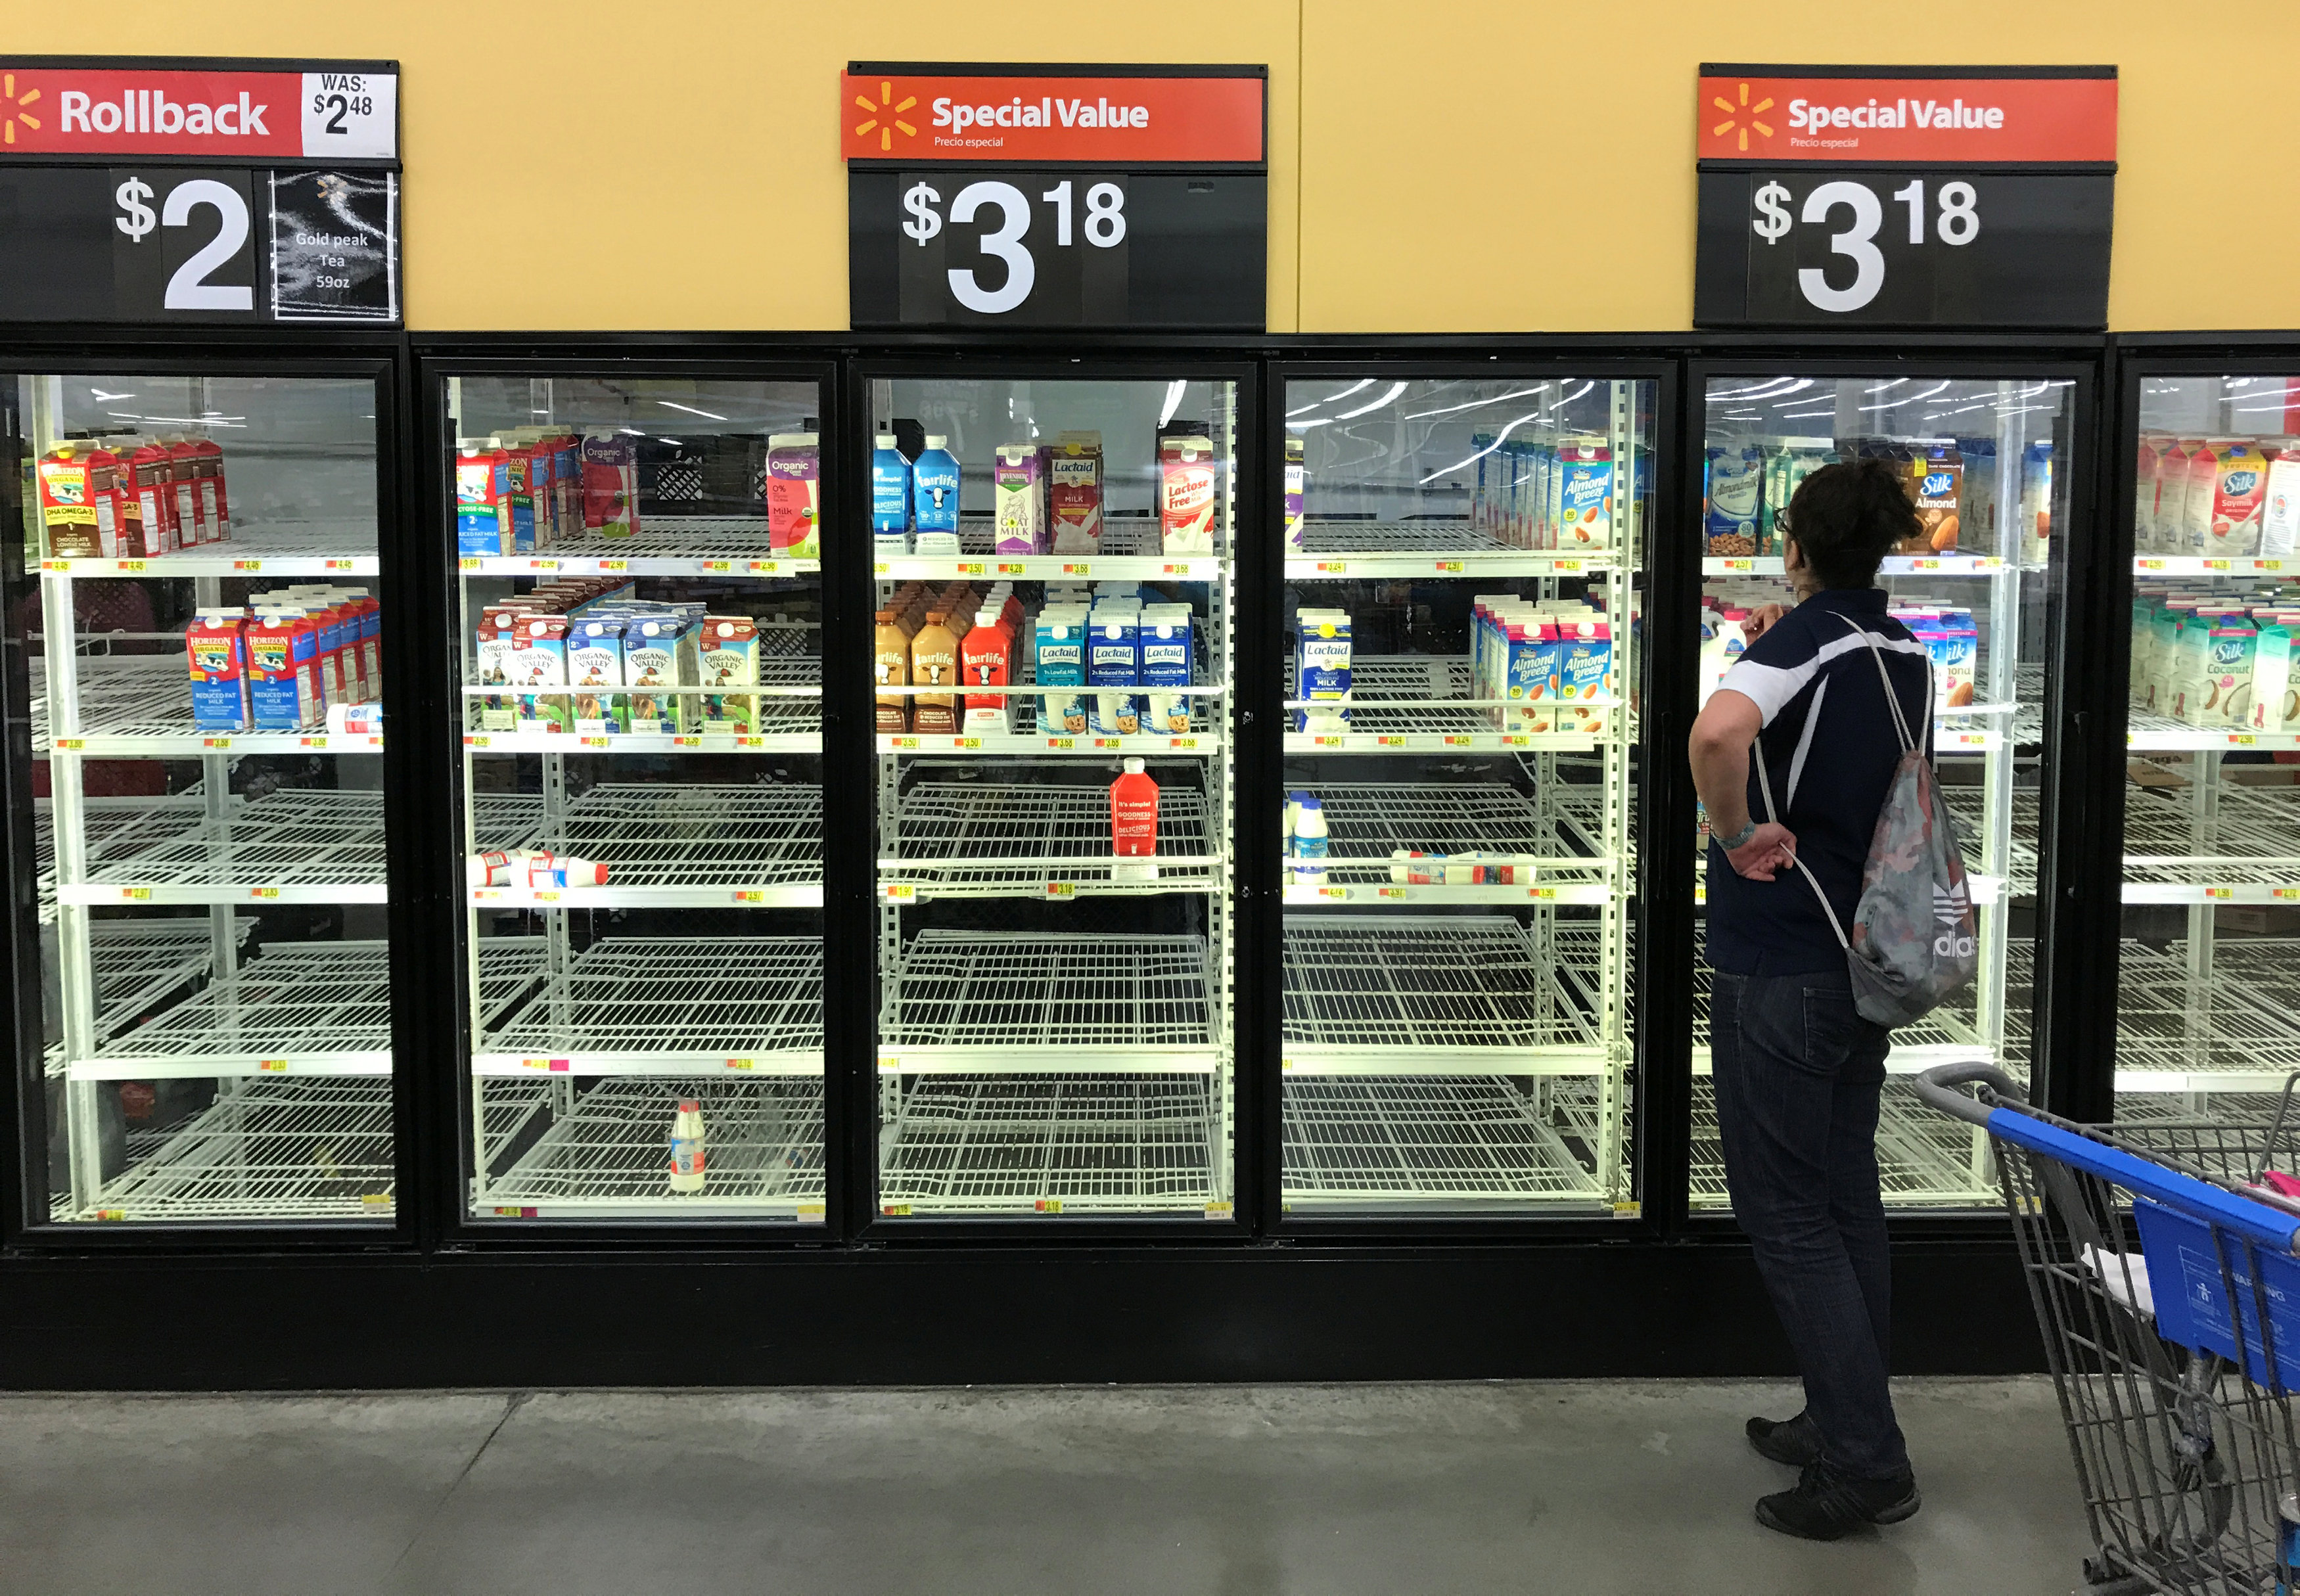 Refrigerator shelves in a Walmart store in Houston, Texas as Hurricane Harvey approaches landfall near the Texas coastal area, on Aug. 25, 2017. (REUTERS/Ernest Scheyder)